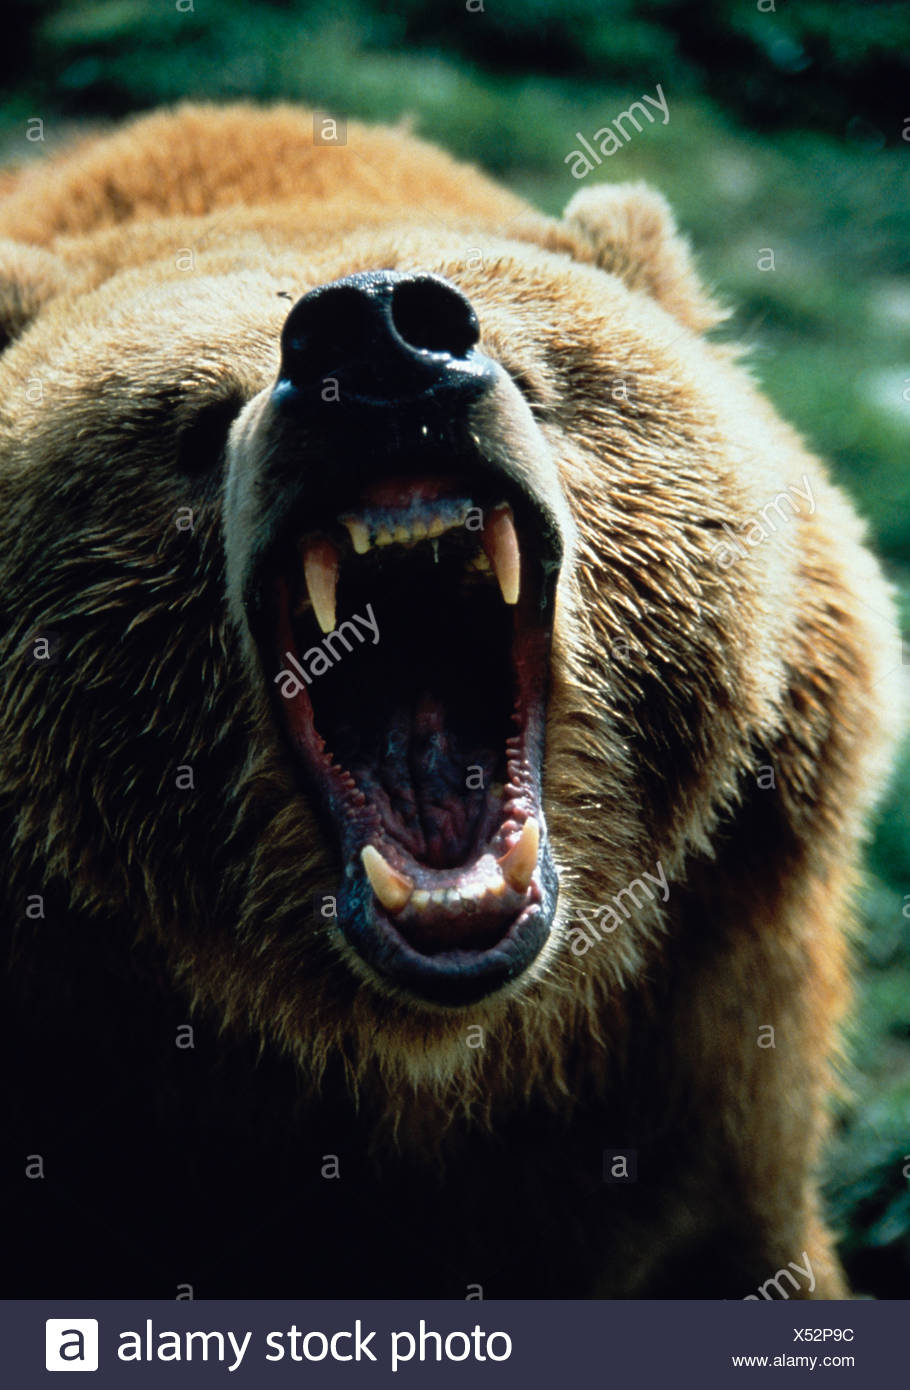 Grizzly growling - Stock Image